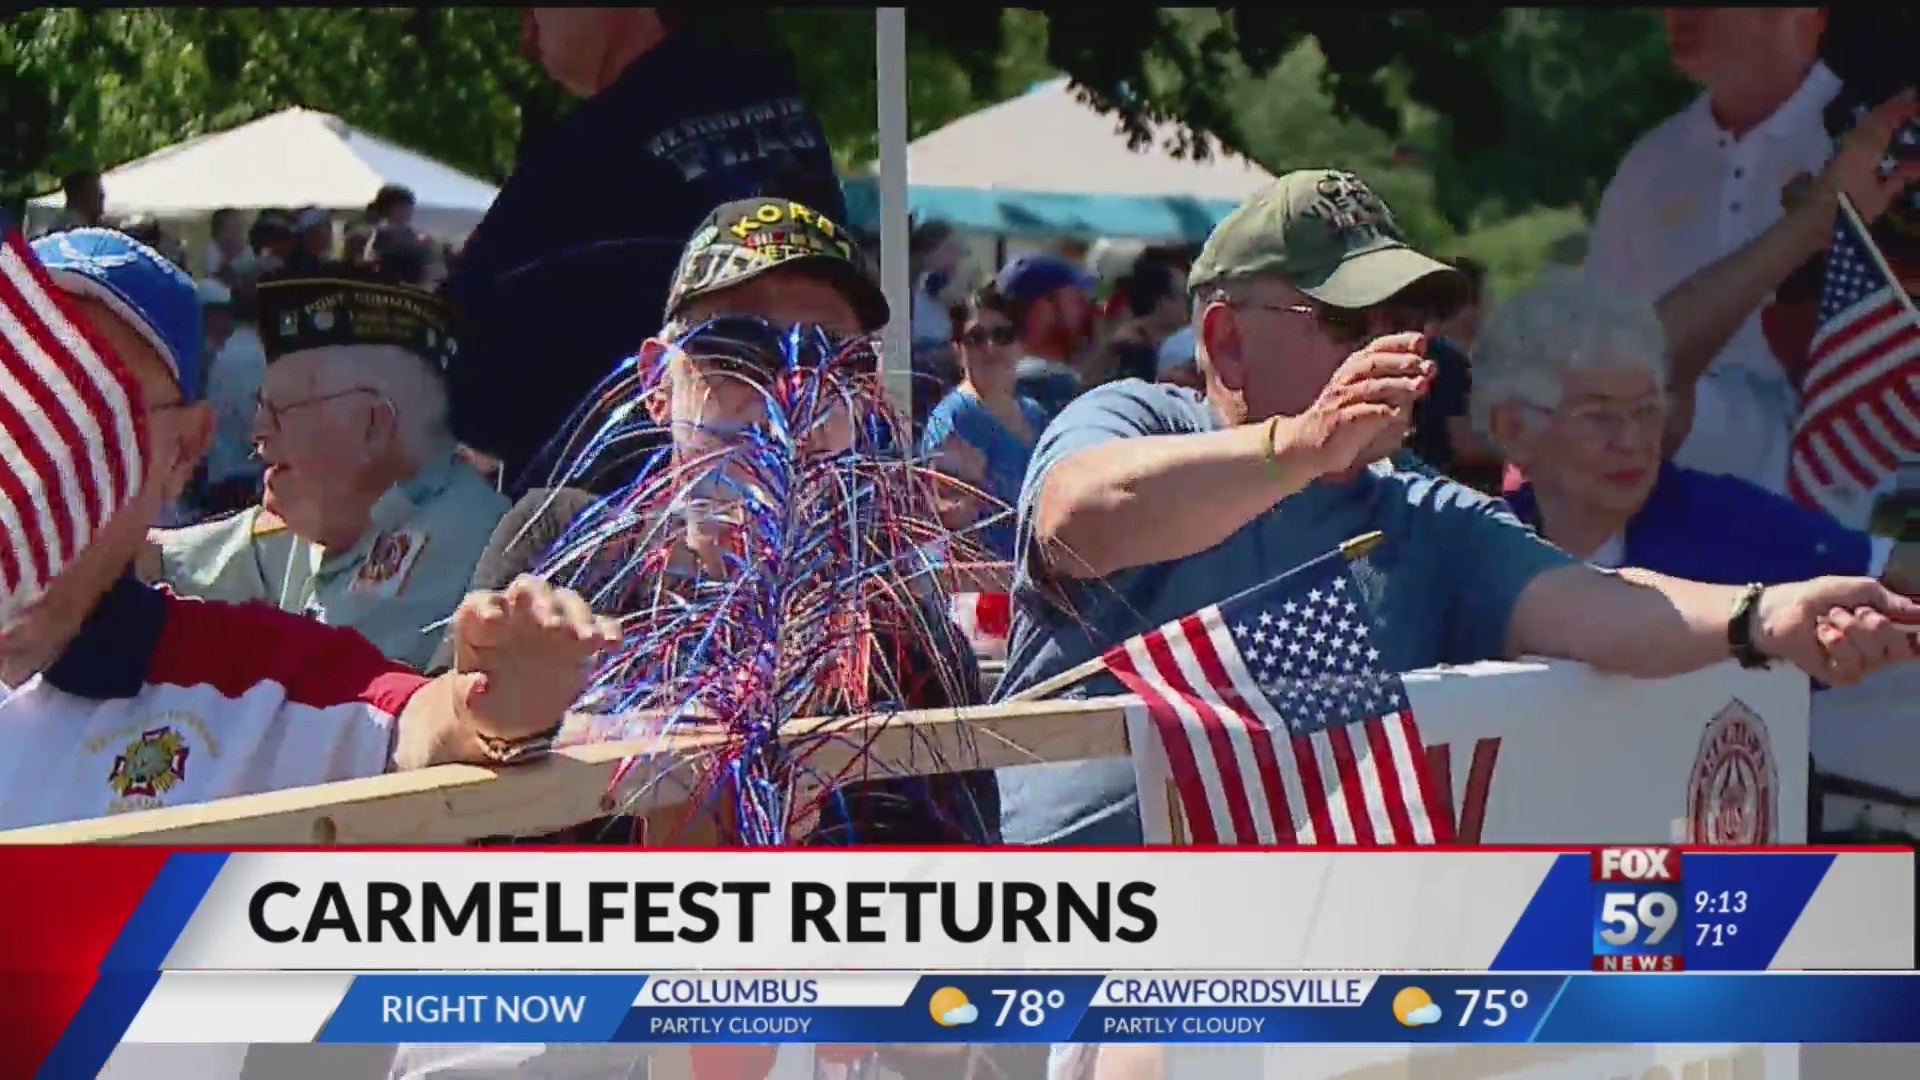 CarmelFest 2021 takes place this Sunday, July 4 and Monday, July 5